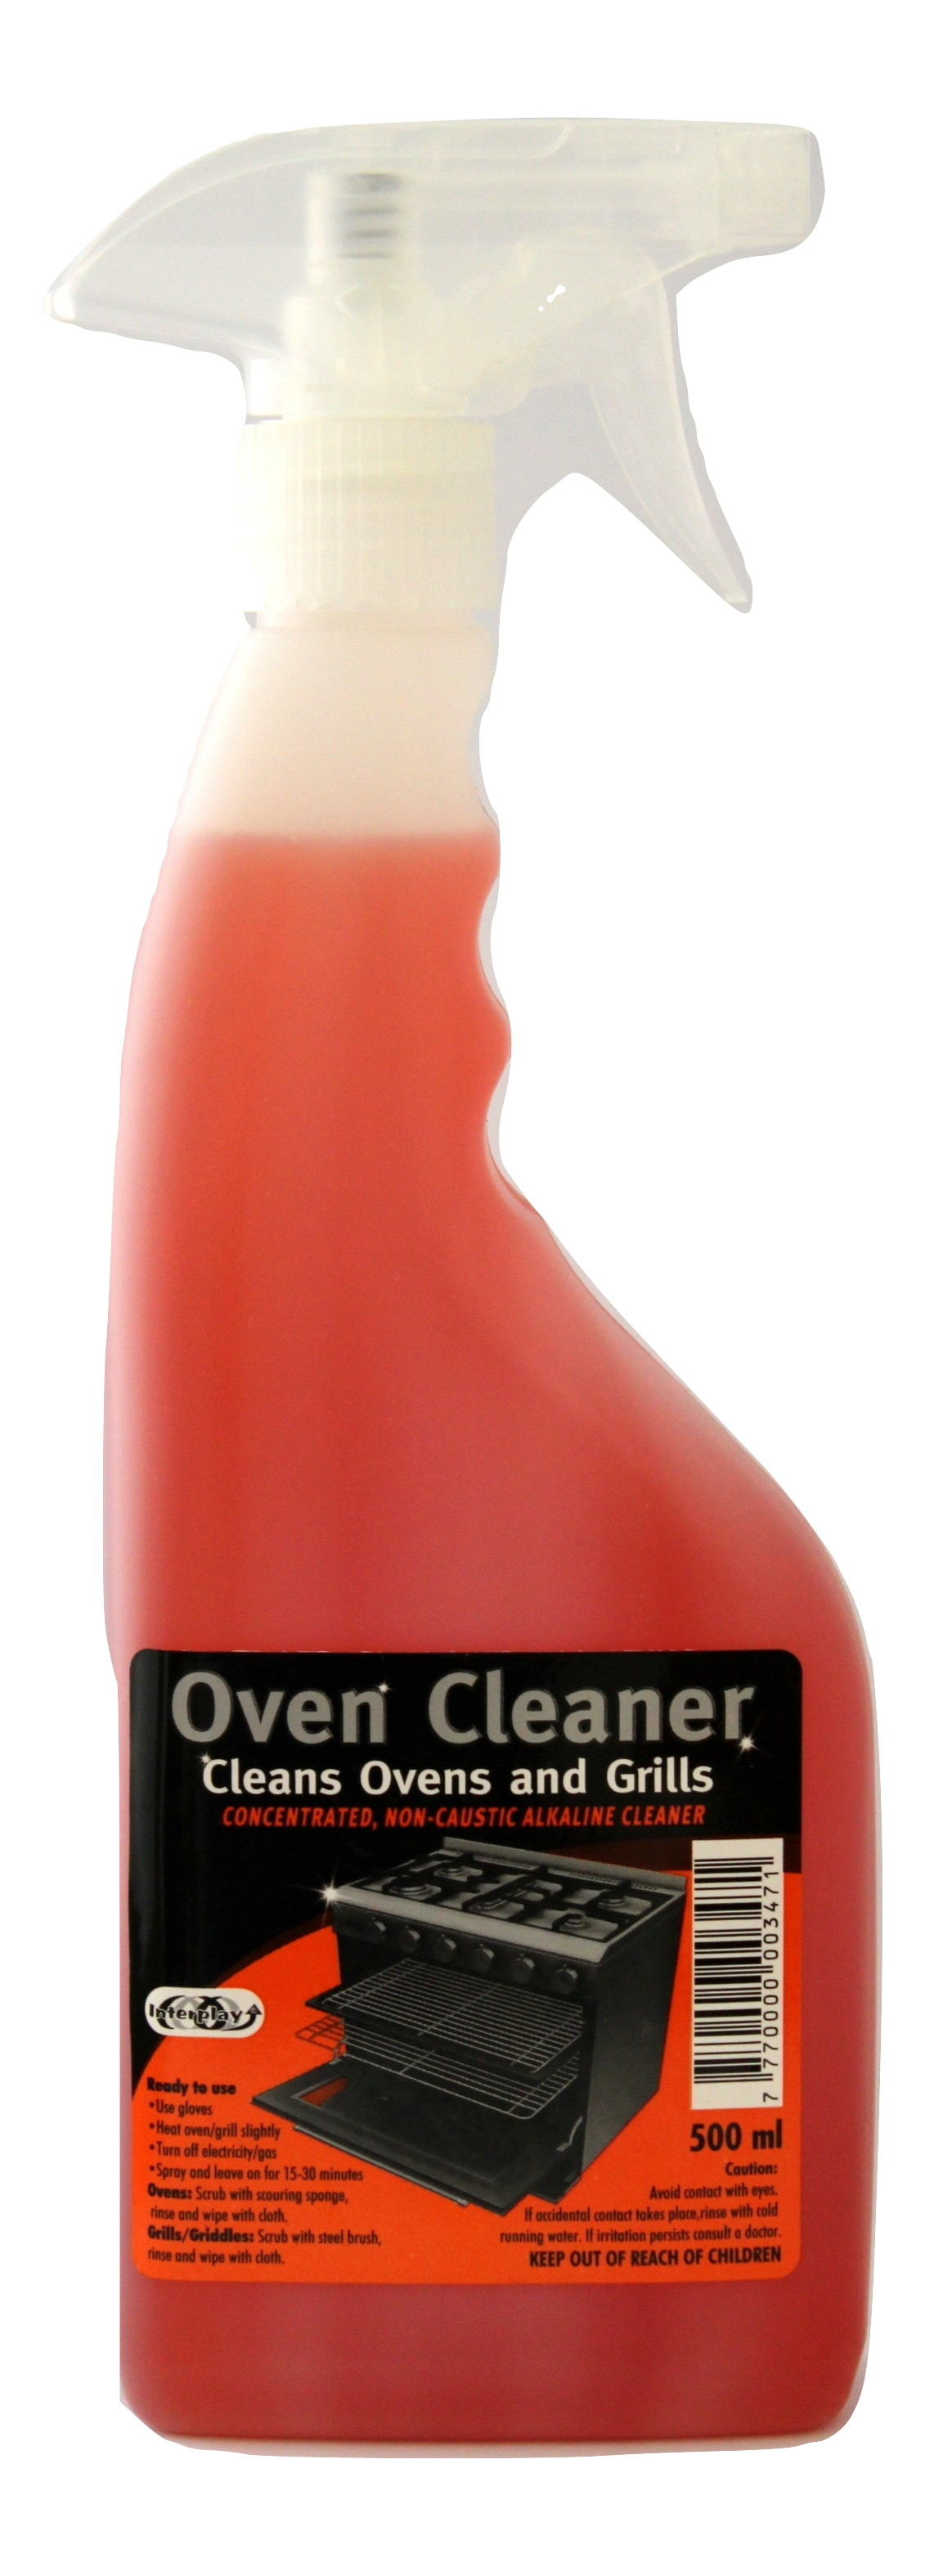 oven-cleaner